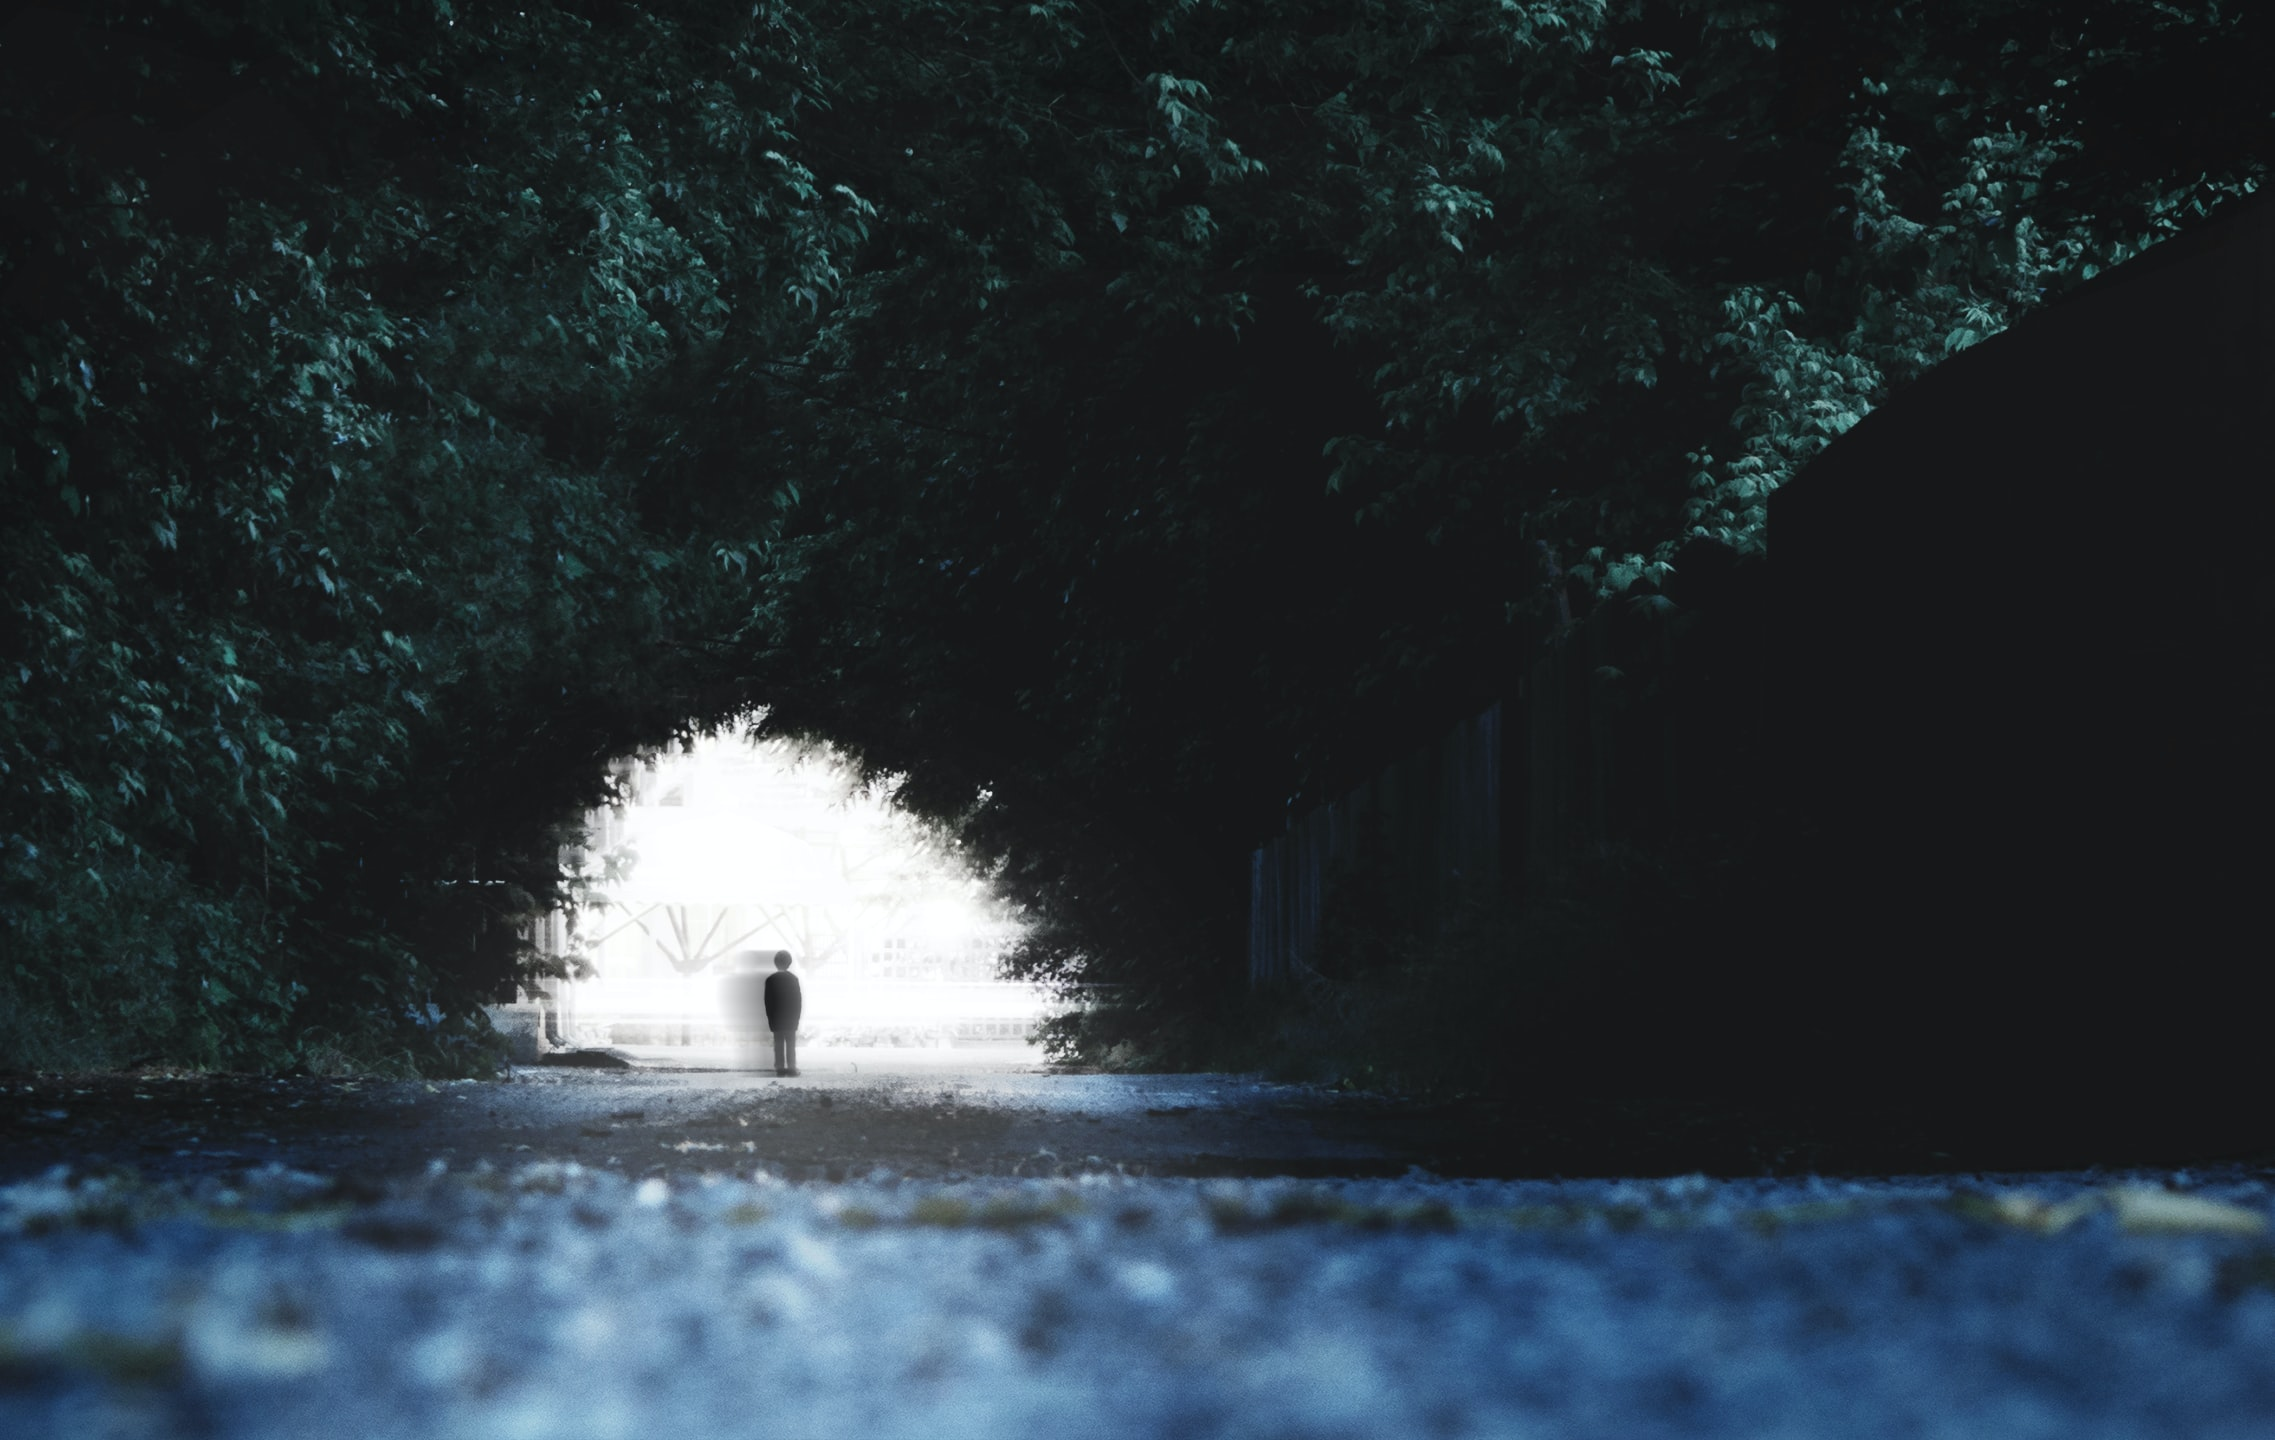 A shady silhouette of a person under a tree archway